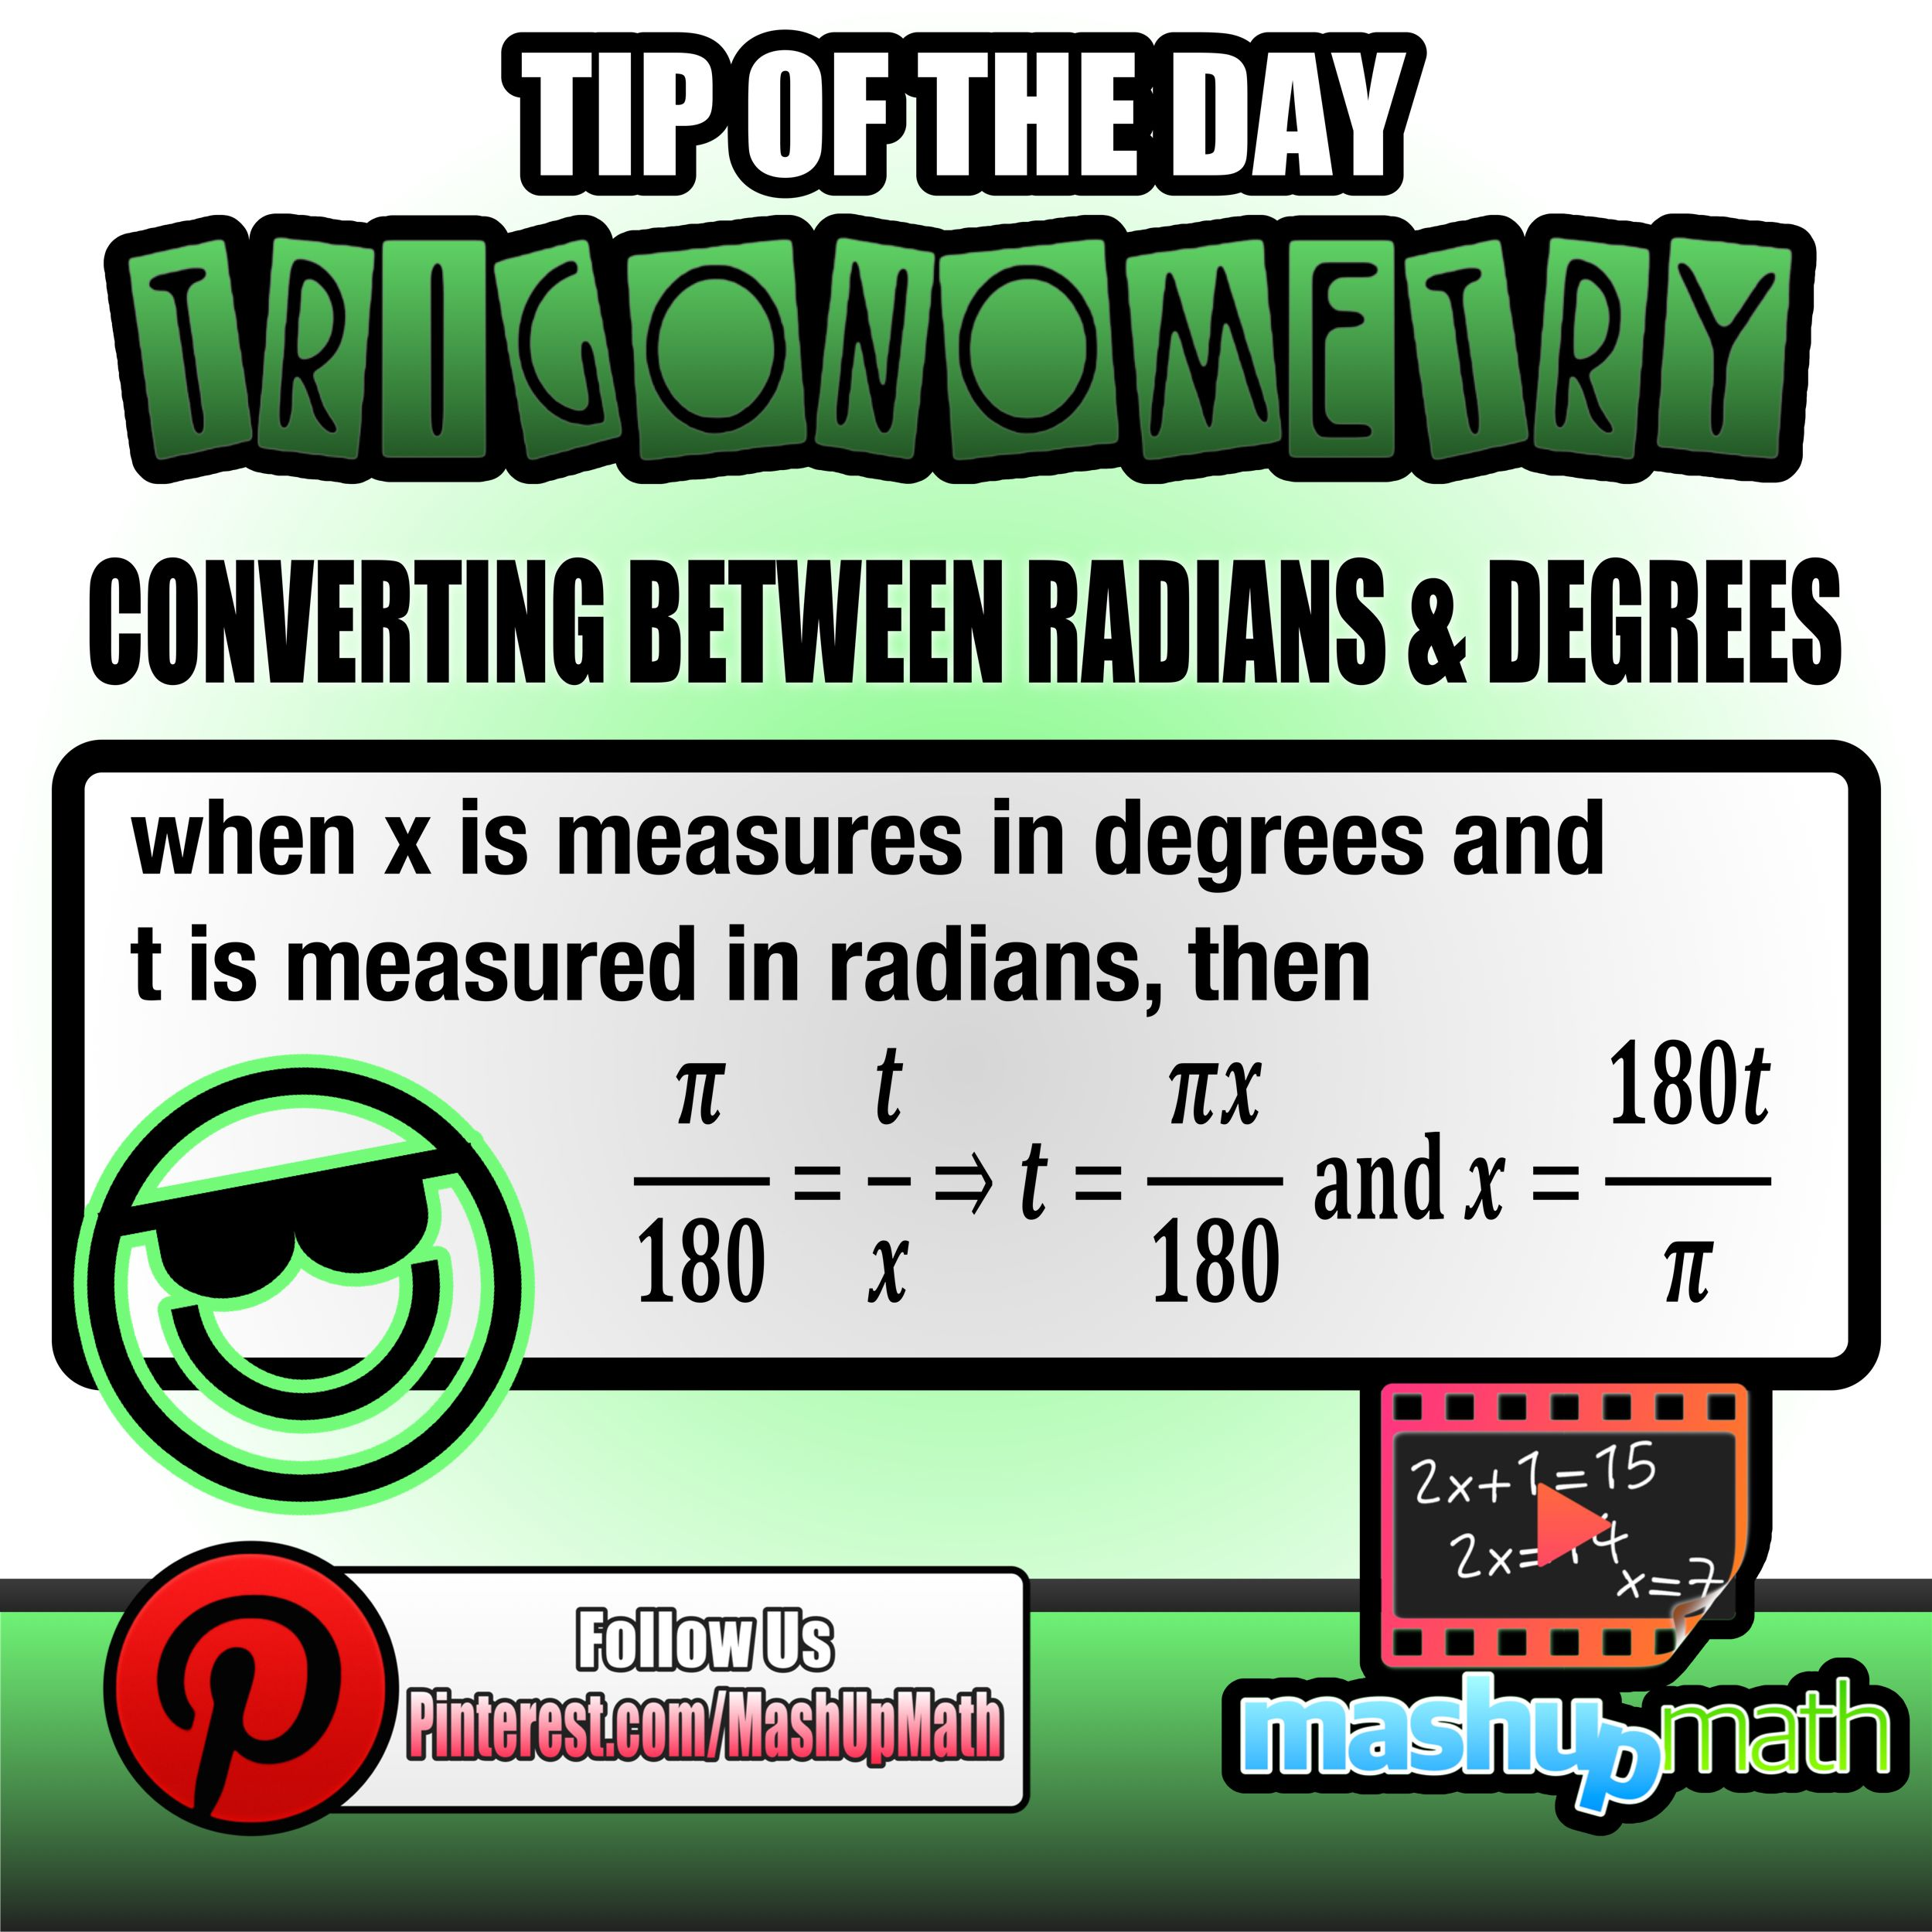 Do You Know How To Convert Between Radians And Degrees